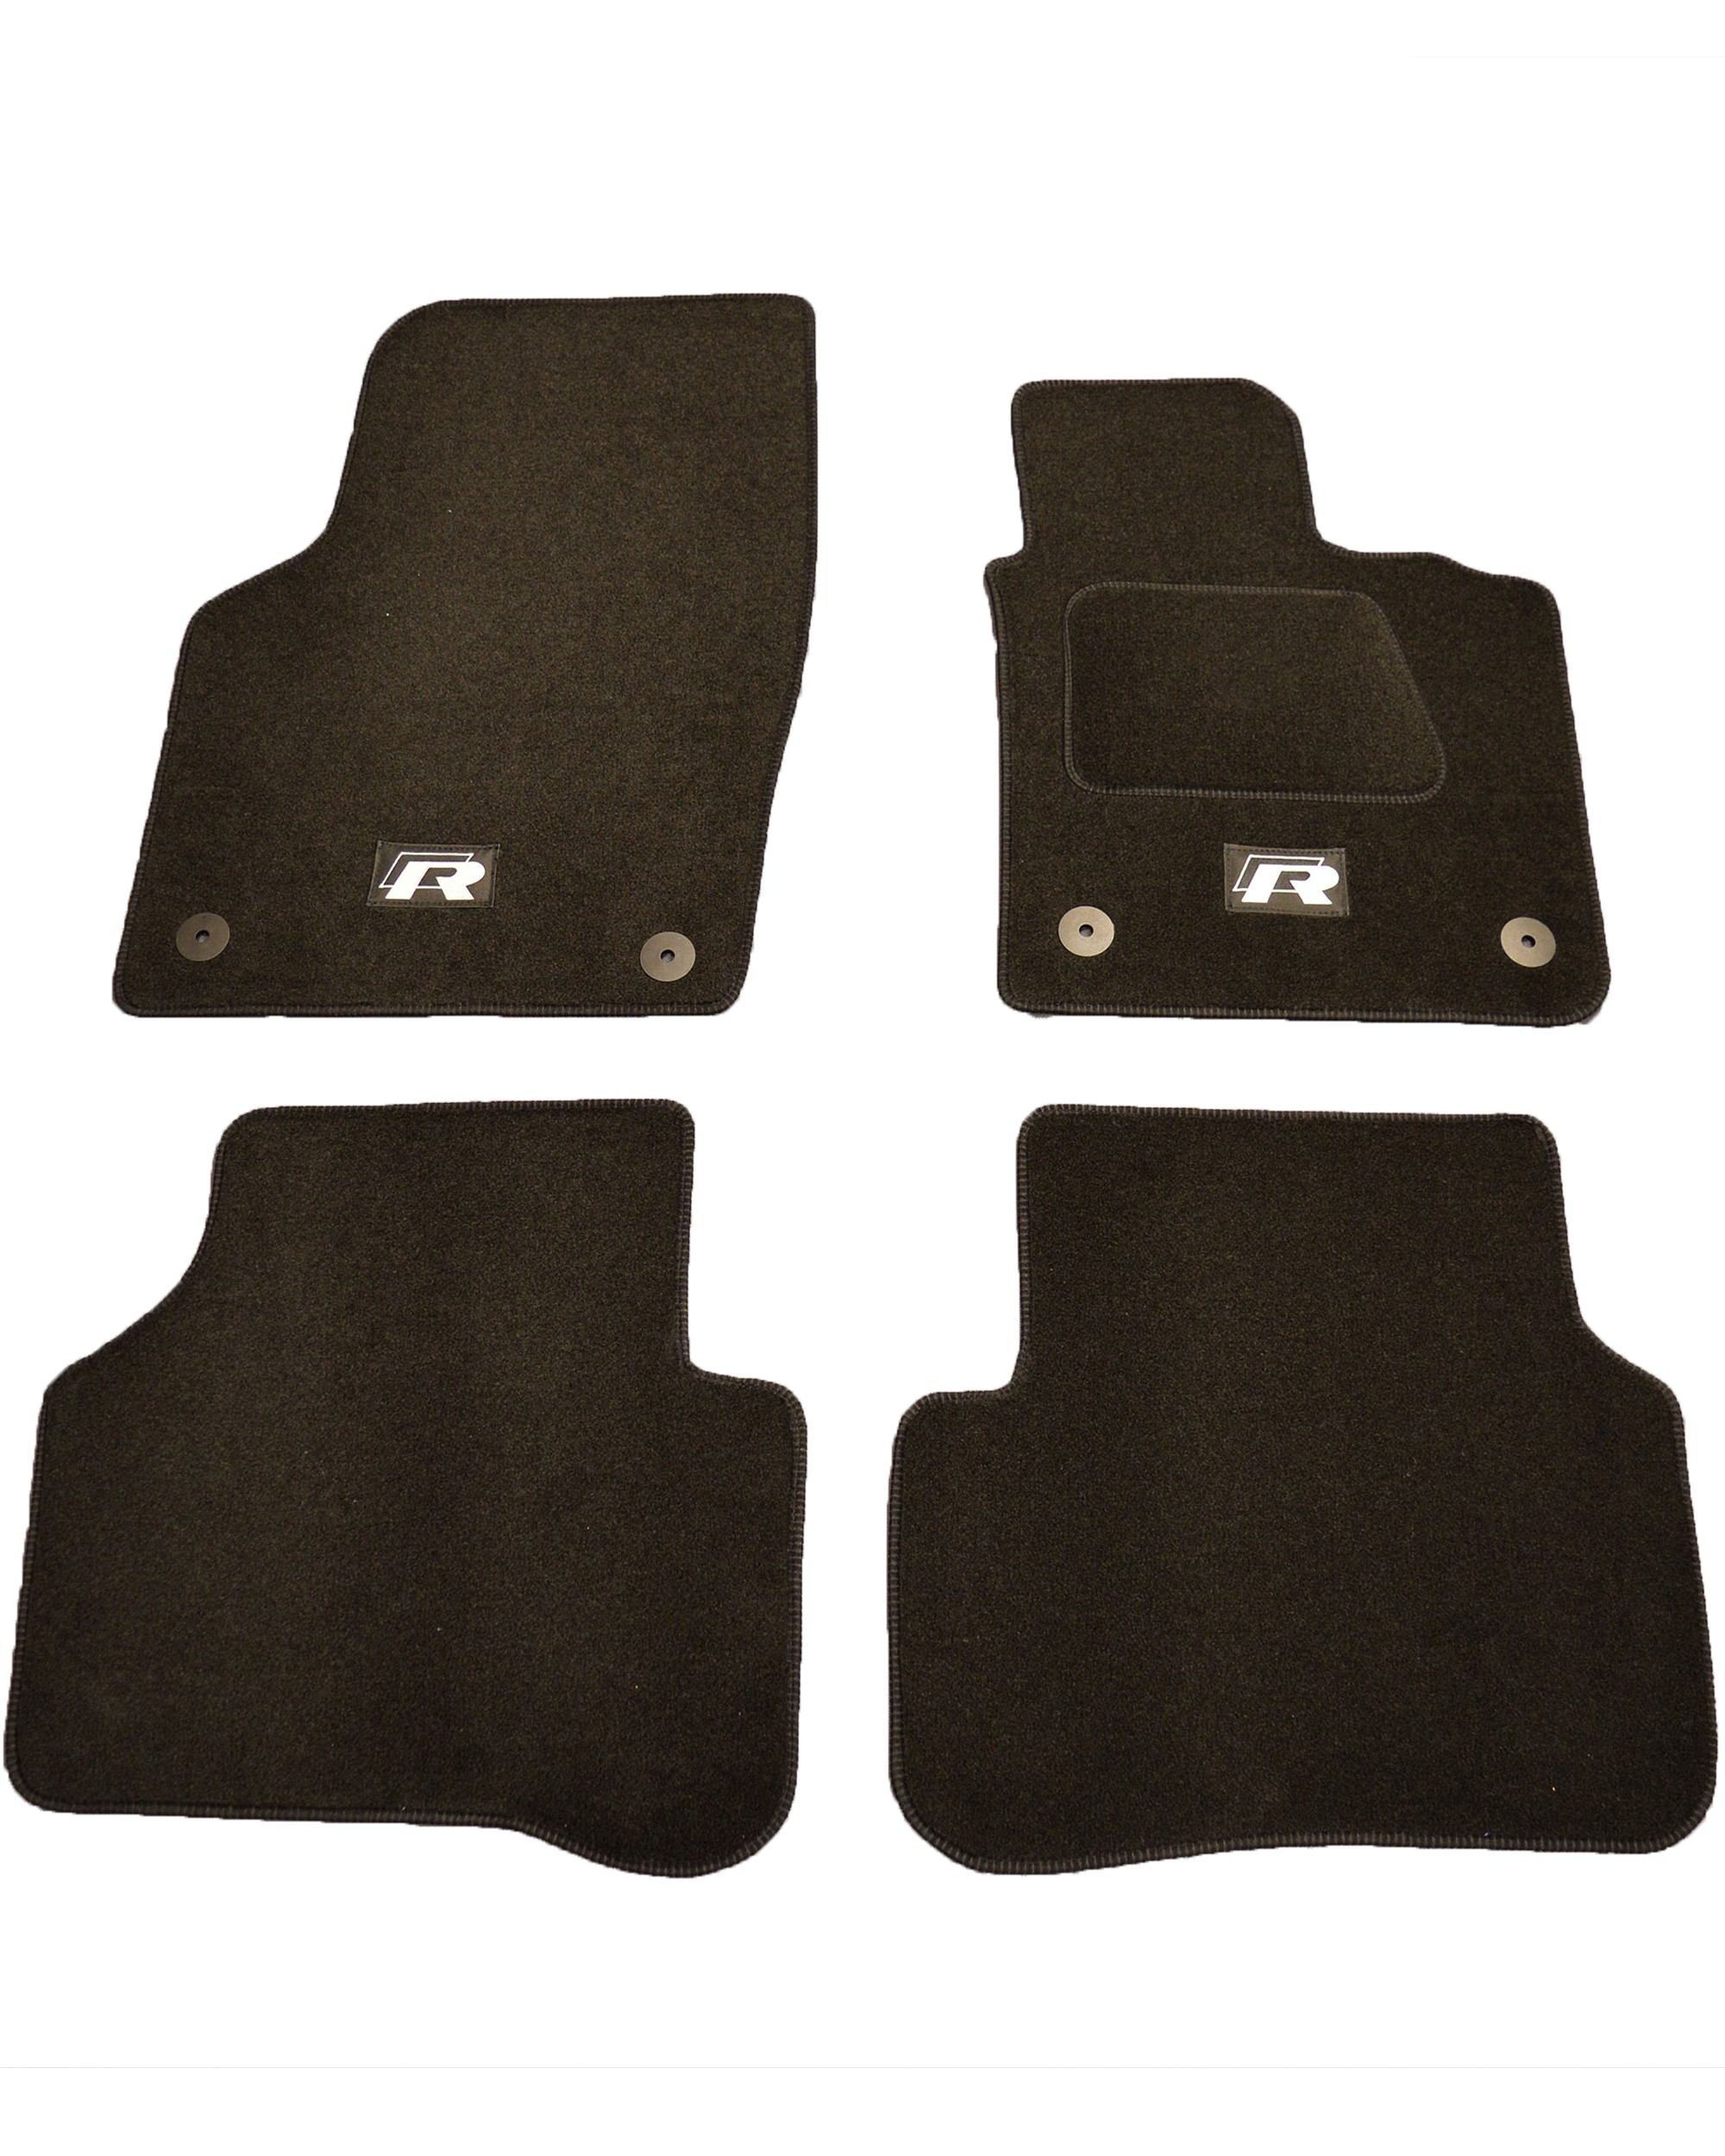 Volkswagen Passat CC R Line Tailored Car Floor Mats Black